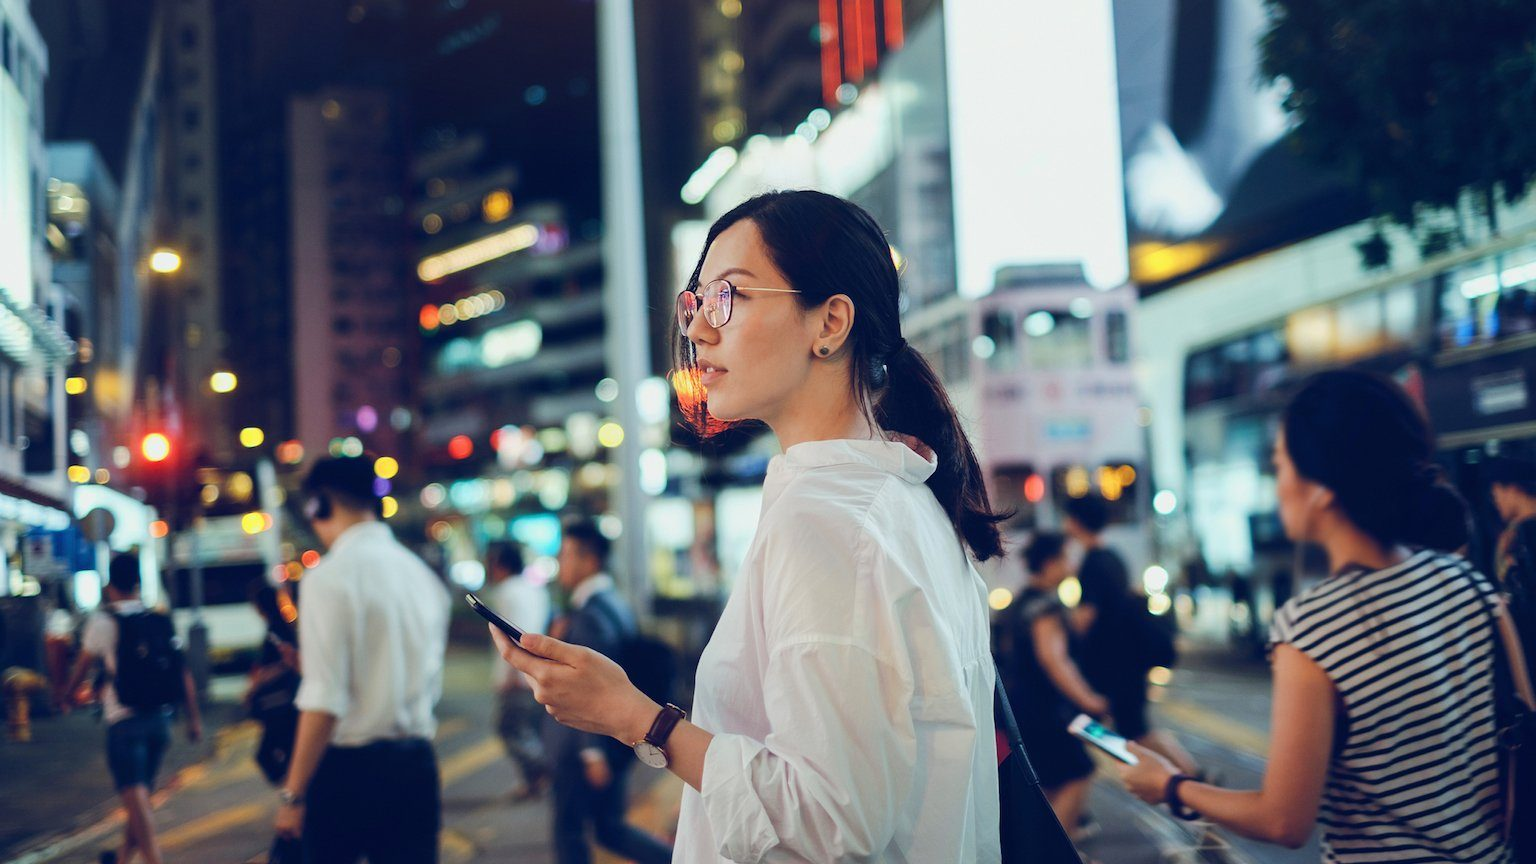 Woman holding a phone in a busy city.